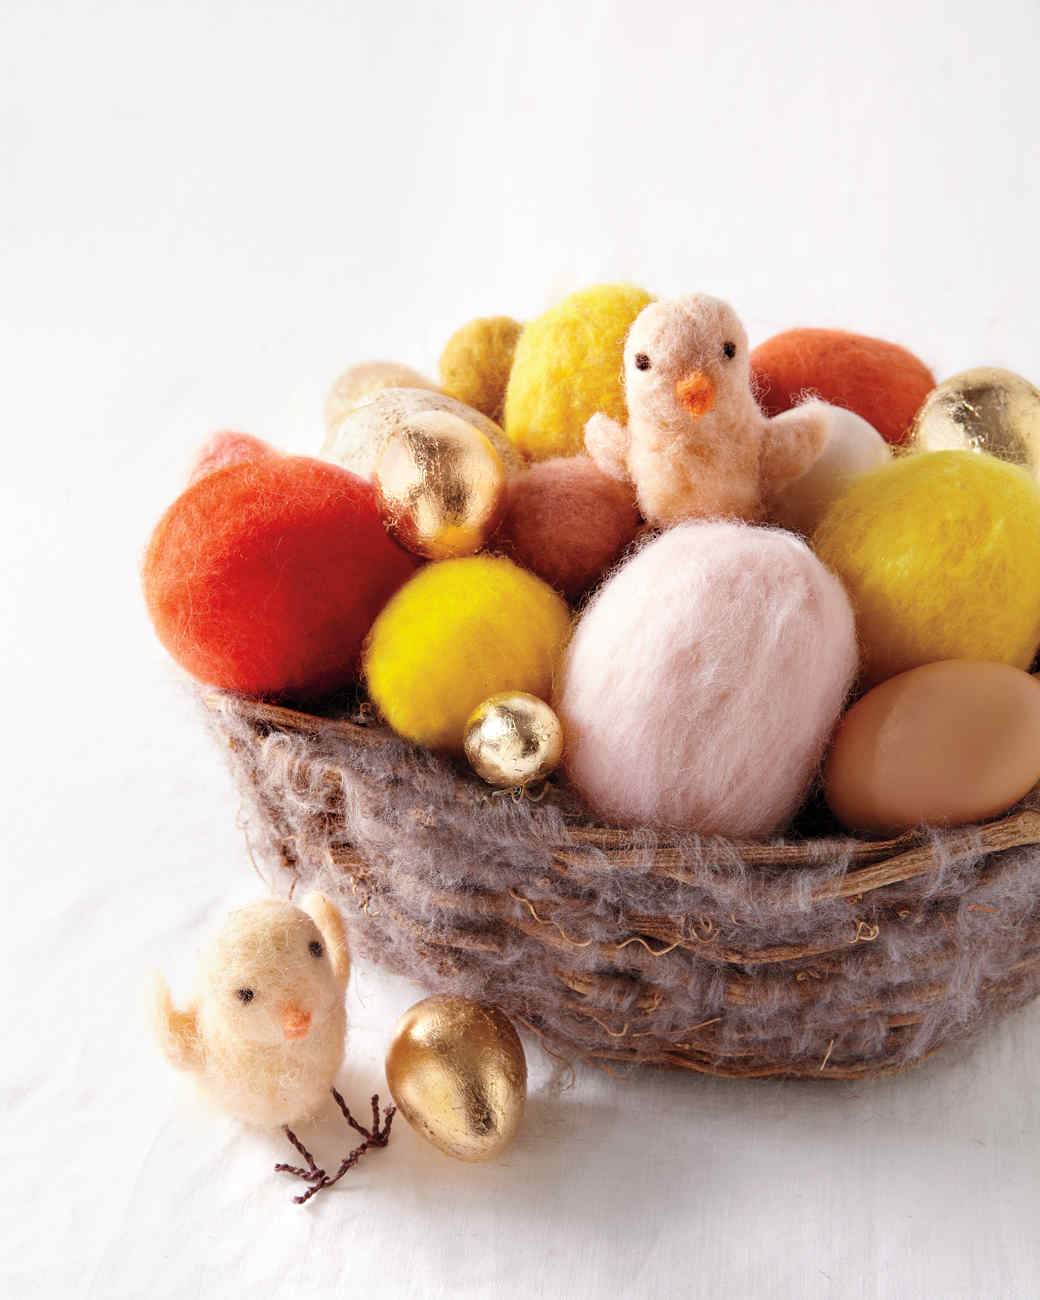 The downy softness of baby chicks is incredibly appealing, and you can replicate that inviting texture with wool roving: Use it to make little yellow chicks to adorn a twig basket. Begin by rolling yellow roving into a long oval shape; repeatedly poke all over it with a needle to felt. Add shape and density to the head, neck, and tail by poking those parts more. Once the desired shape is achieved, cover with another layer of the roving for a softer appearance. To make the wing, place the roving on the mat and poke with a needle. Attach to the body by poking at the front edge of the wing. Roll tiny bits of black roving and poke into the face for the eyes. Roll orange roving and poke into the face for the beak. Go over the floral wire with a marker. Cut two four-inch pieces, twist, and poke through the body for legs. Cut two more two-inch pieces and bend into small V's; twist onto the legs for the feet.                             Shop Now: Phinus Needle Felting Kit, $7, amazon.com; Woolbuddy Needle Felting Woolen Mat, $18, amazon.com; Panacea Green Floral Wire, $2.49, michaels.com.